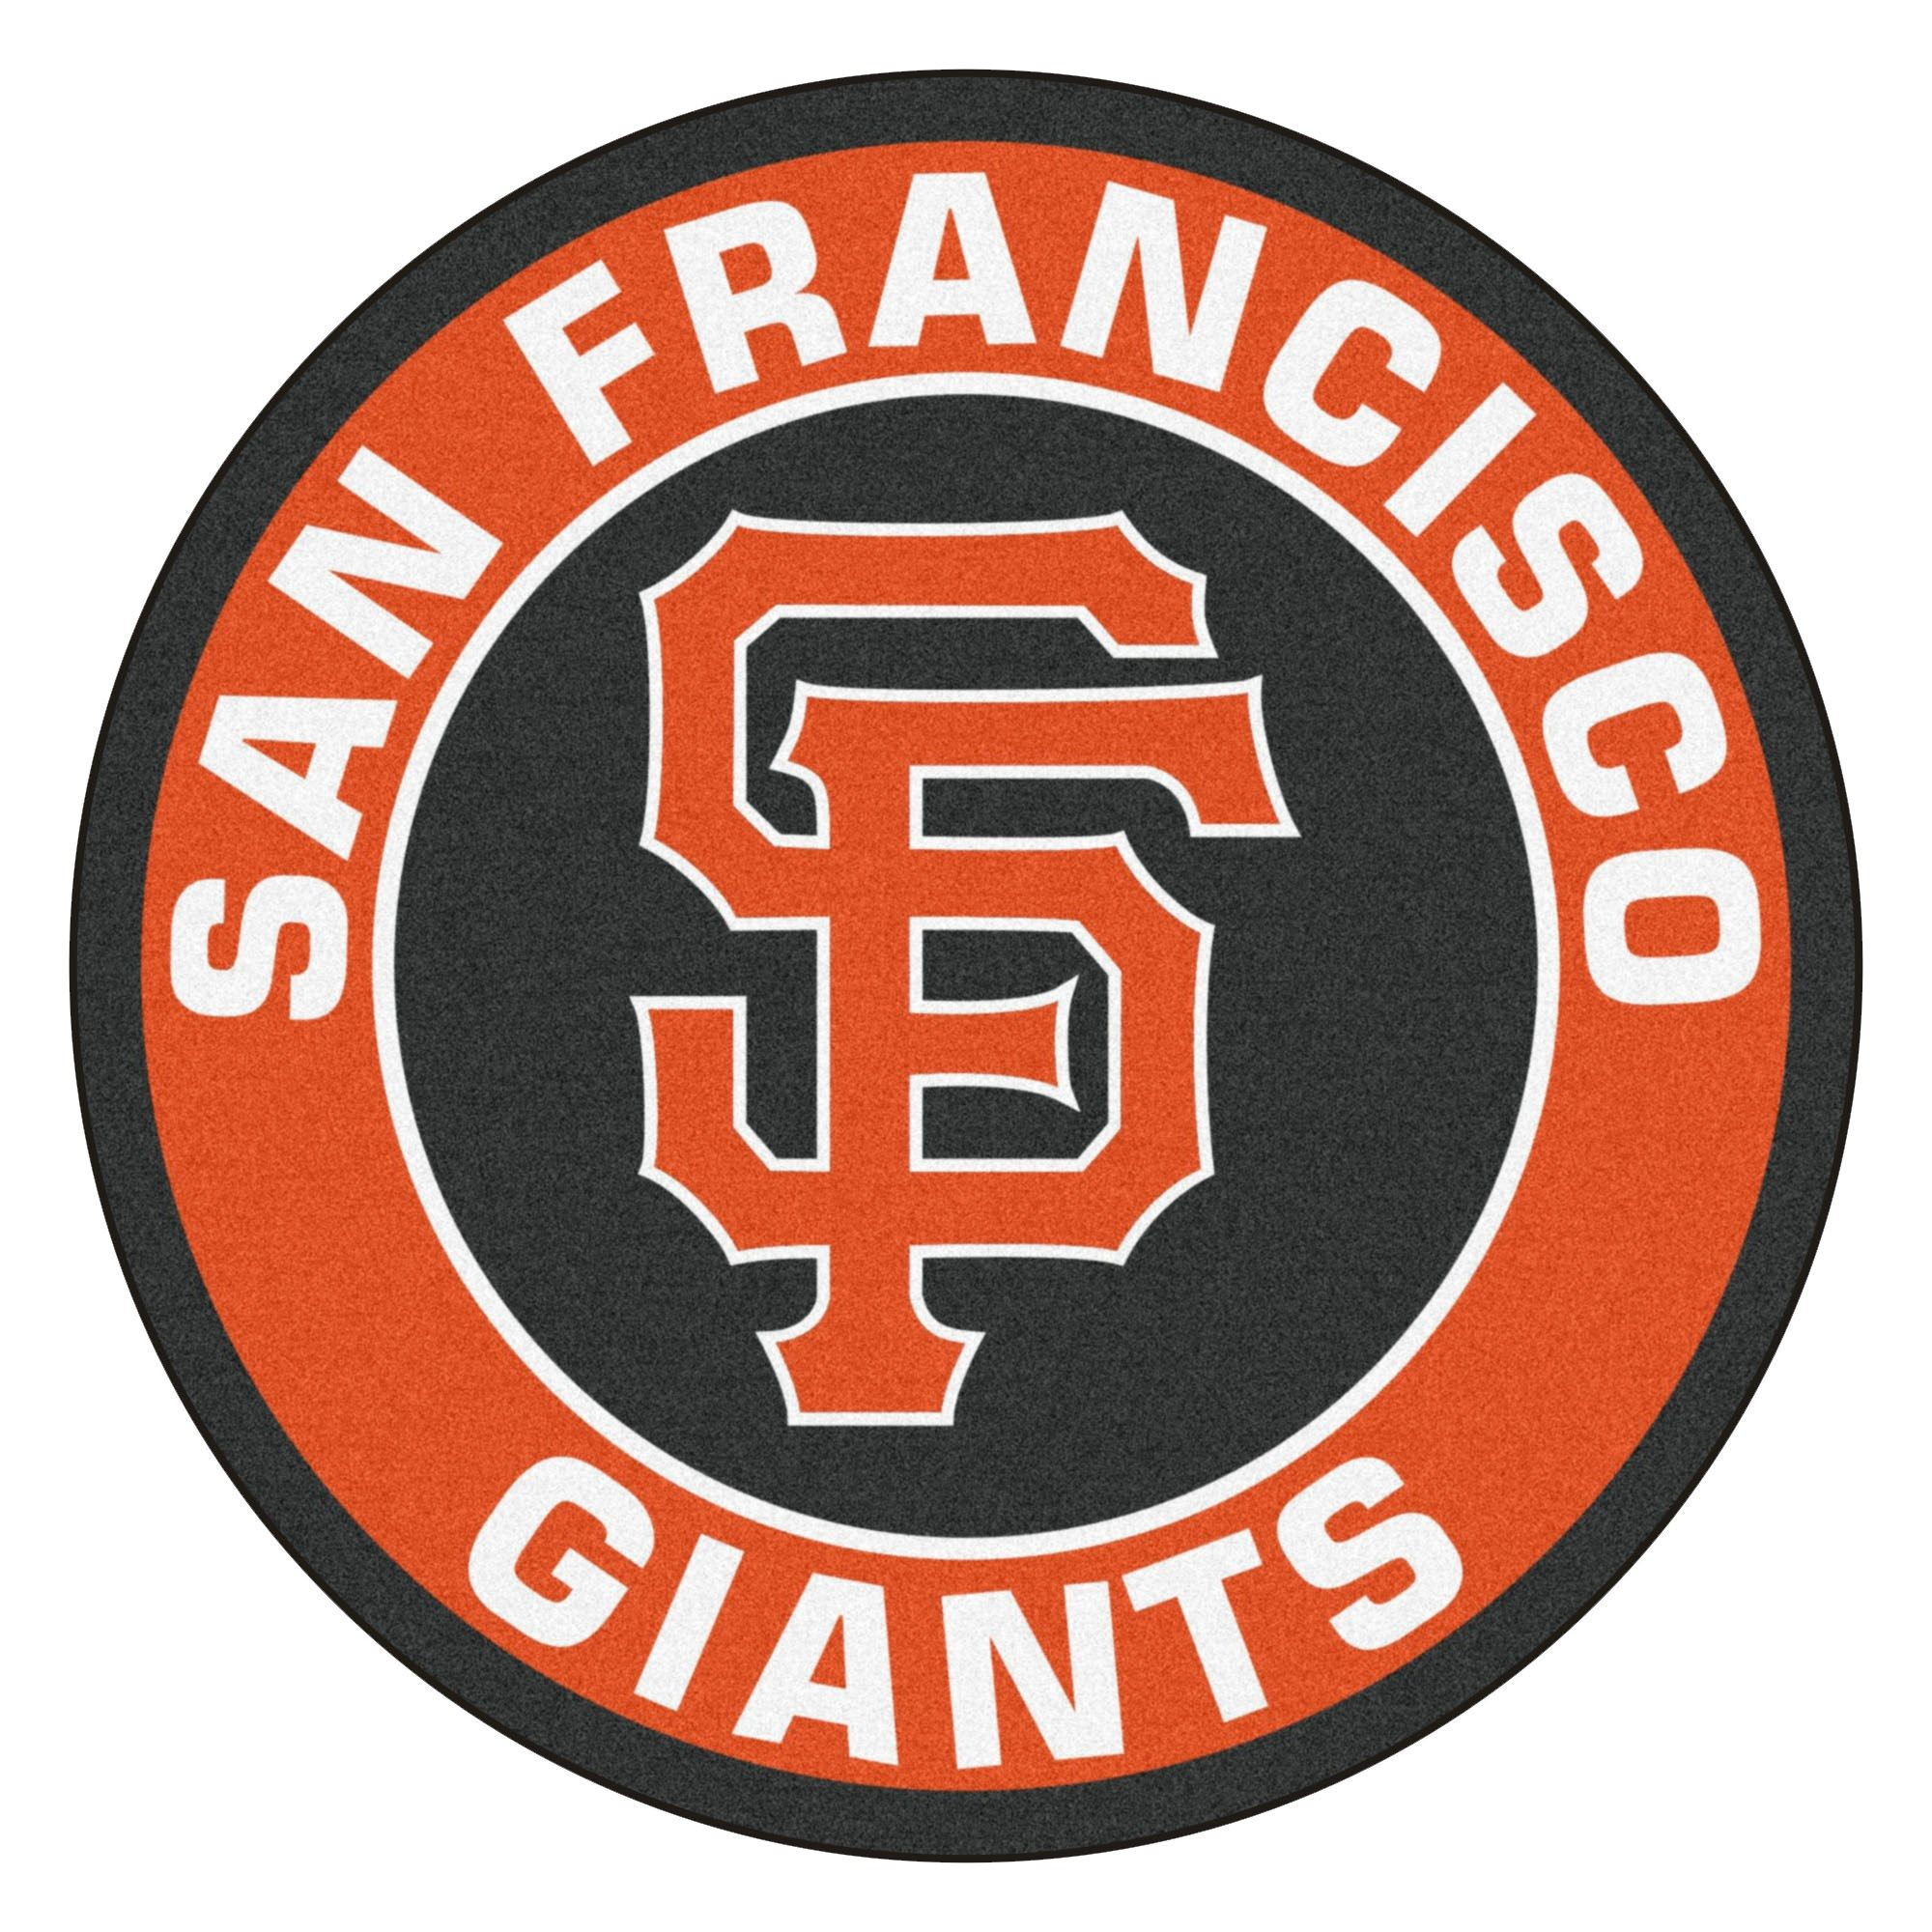 San Francisco Giants Logos Hd Ololoshenka Pinterest